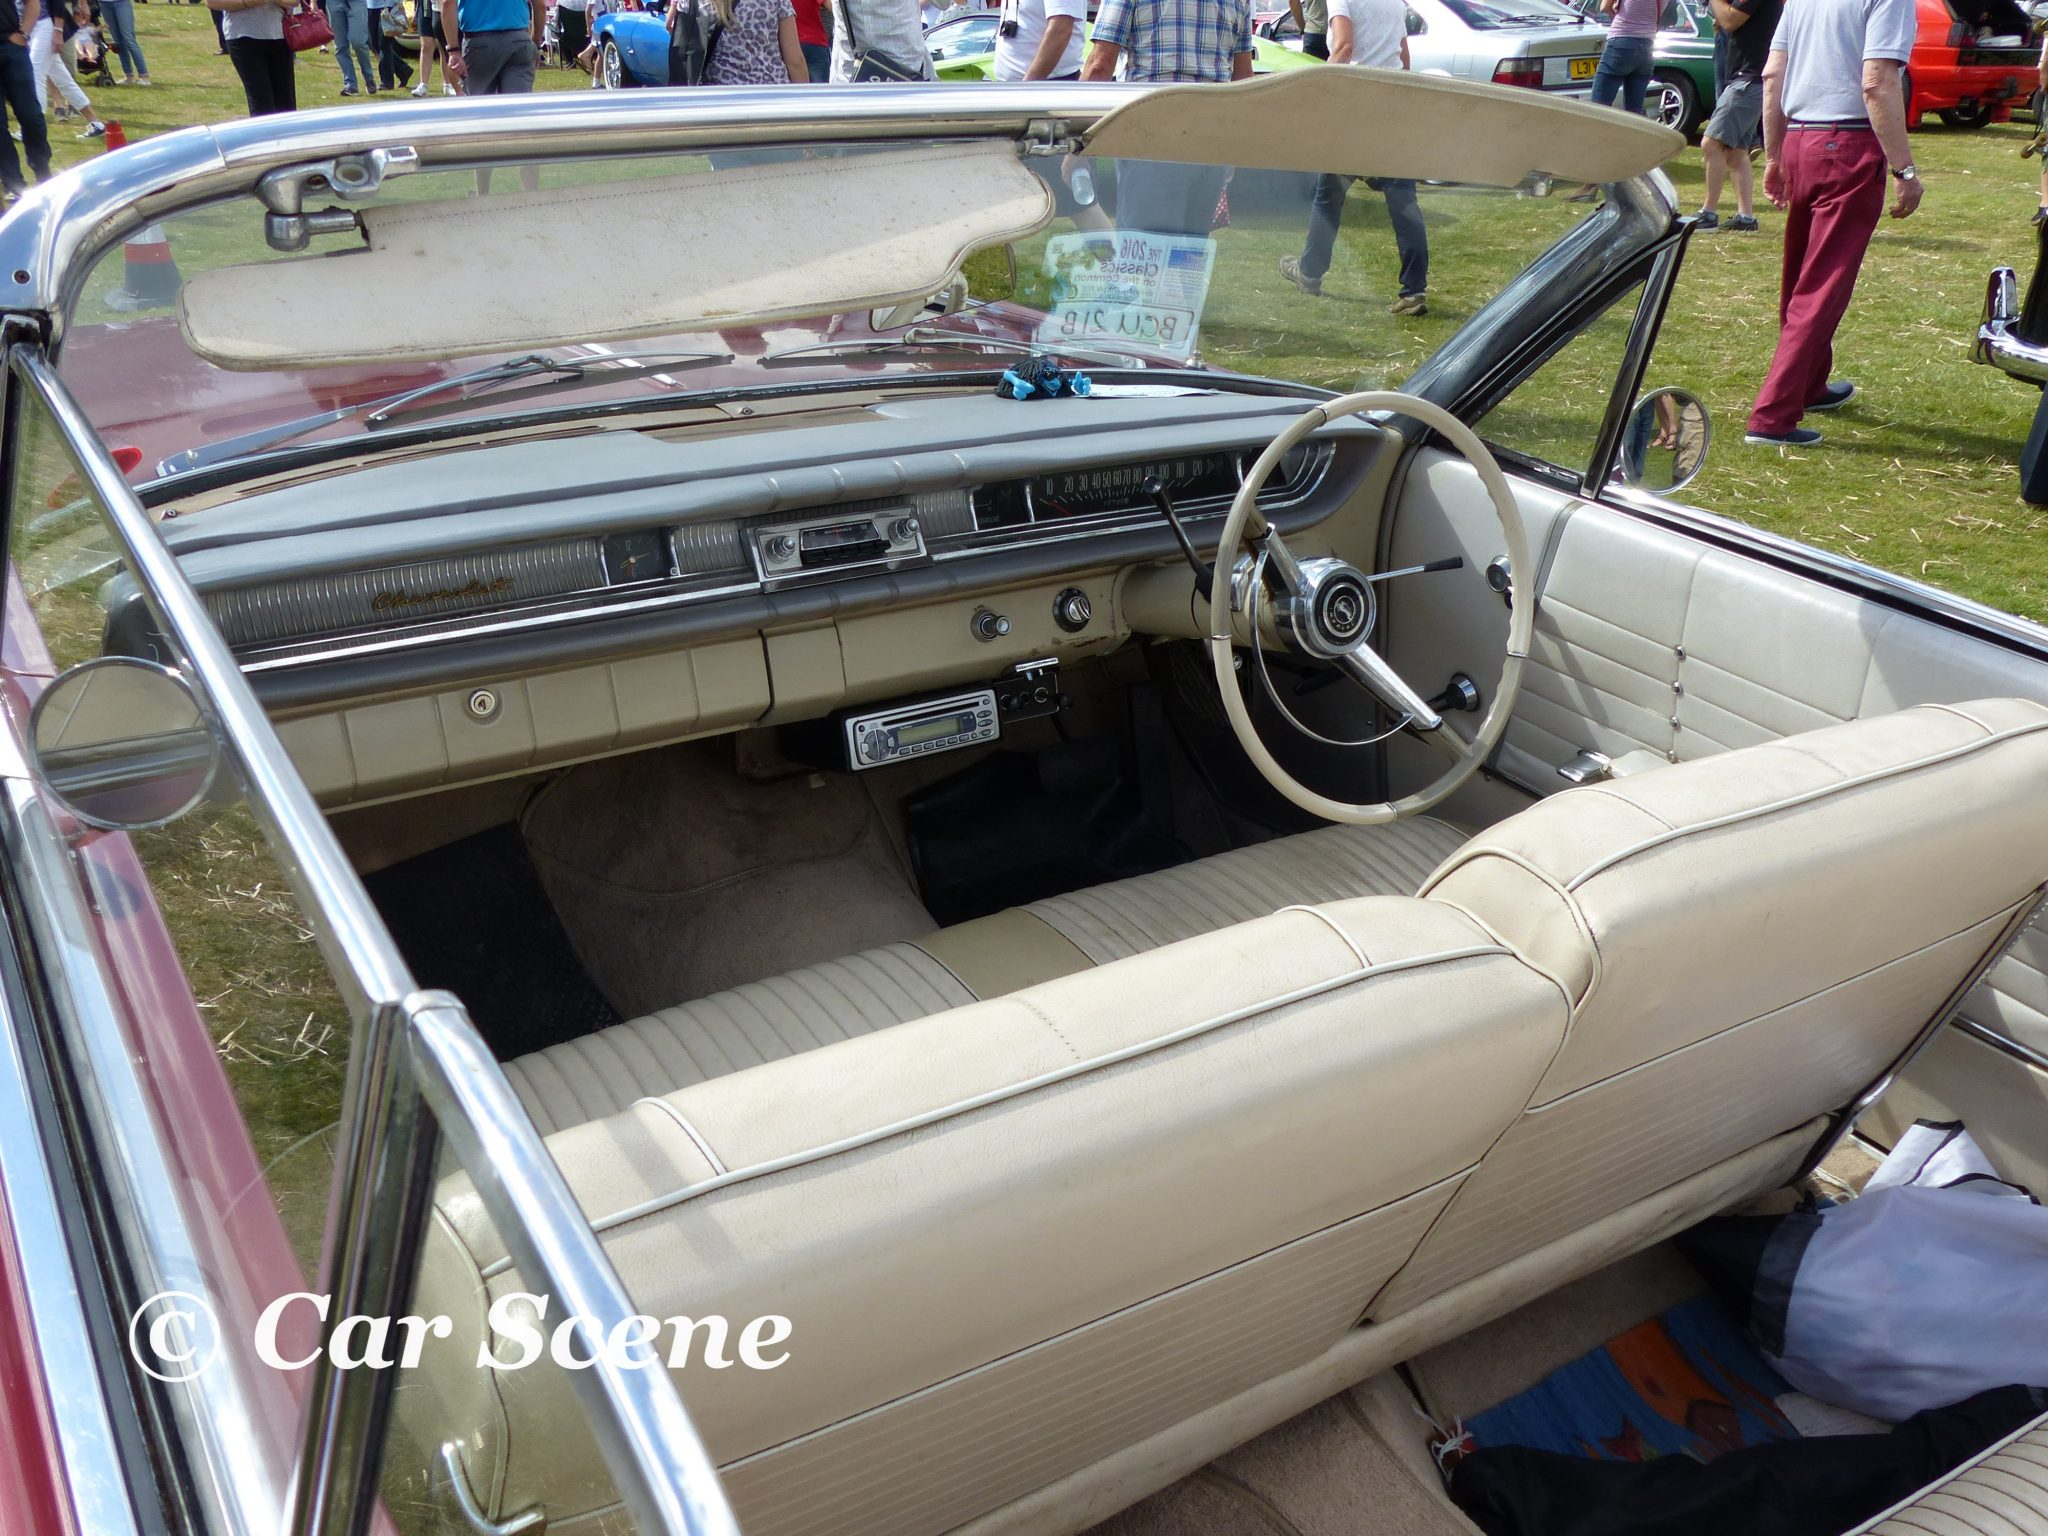 1964 Chevy Impala covertible interior view